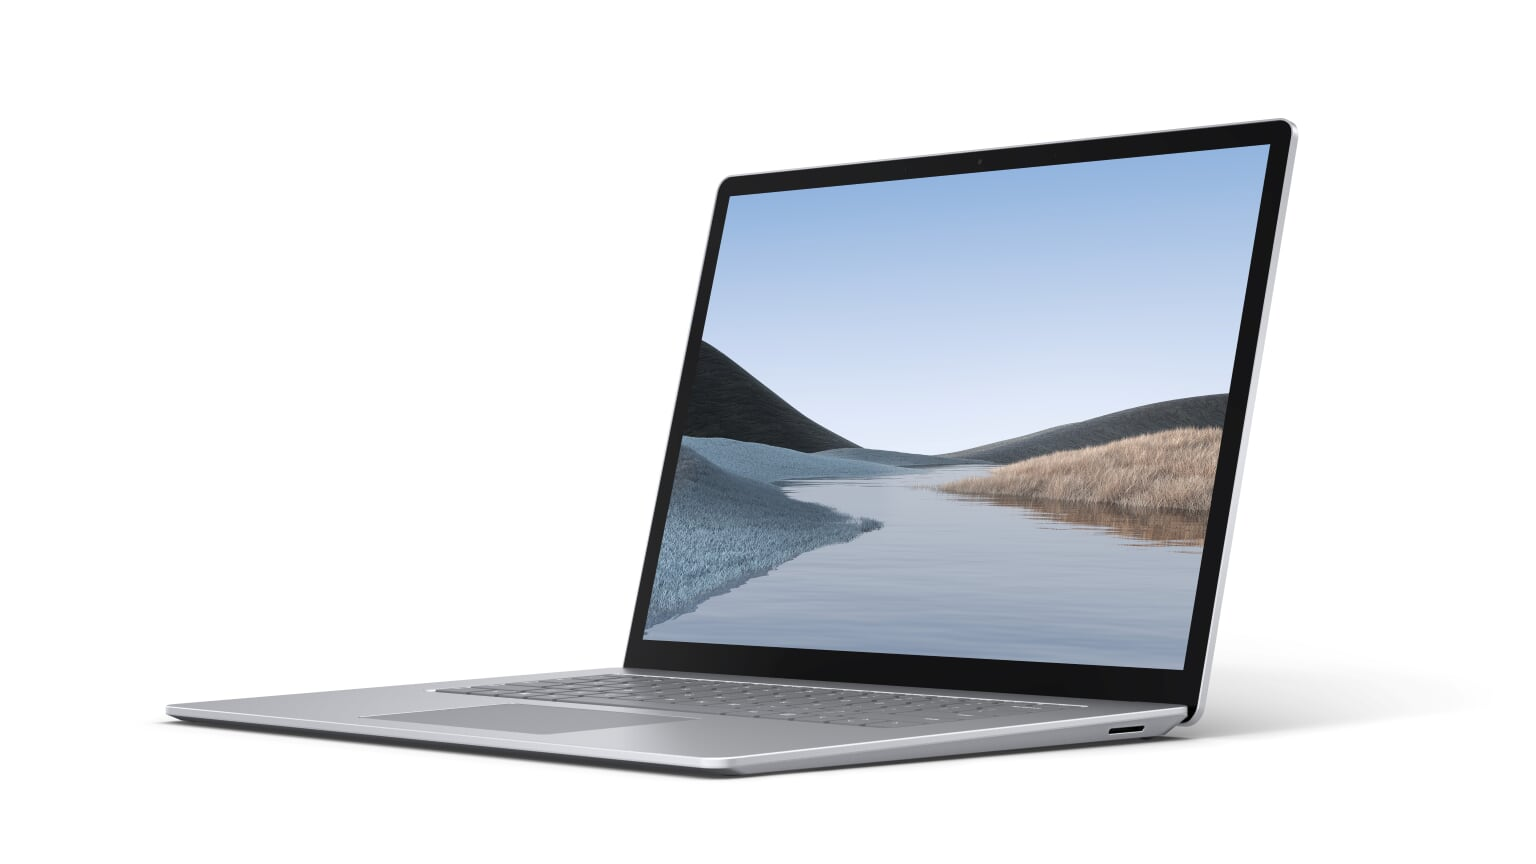 Microsoft Surface Laptop 3 - 15in / i5-1035G7 / 8GB / 256GB, Platinum; Commercial